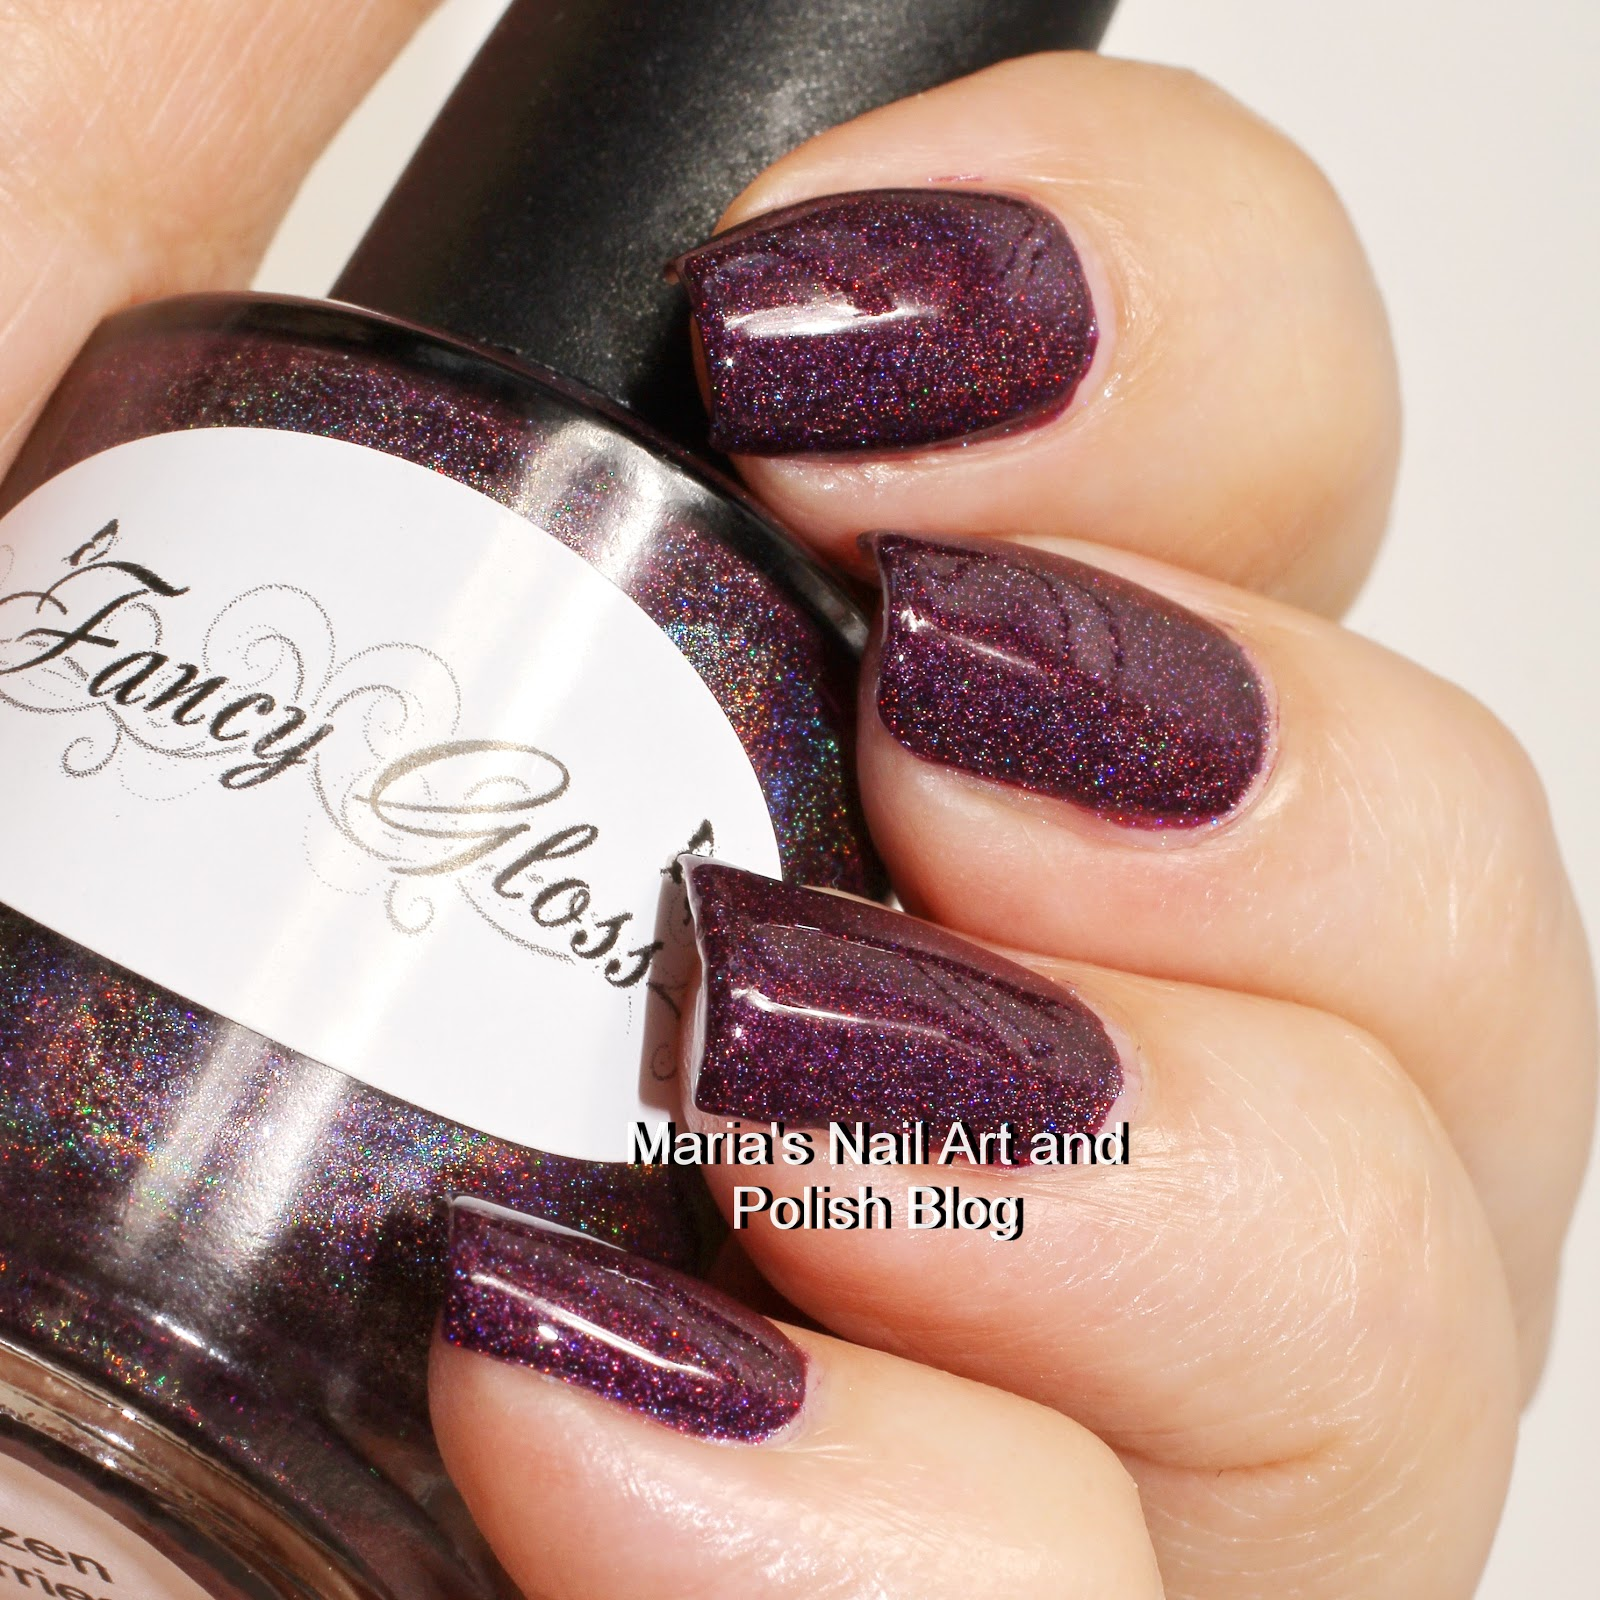 Marias Nail Art and Polish Blog: Fancy Gloss Frozen Berries swatches